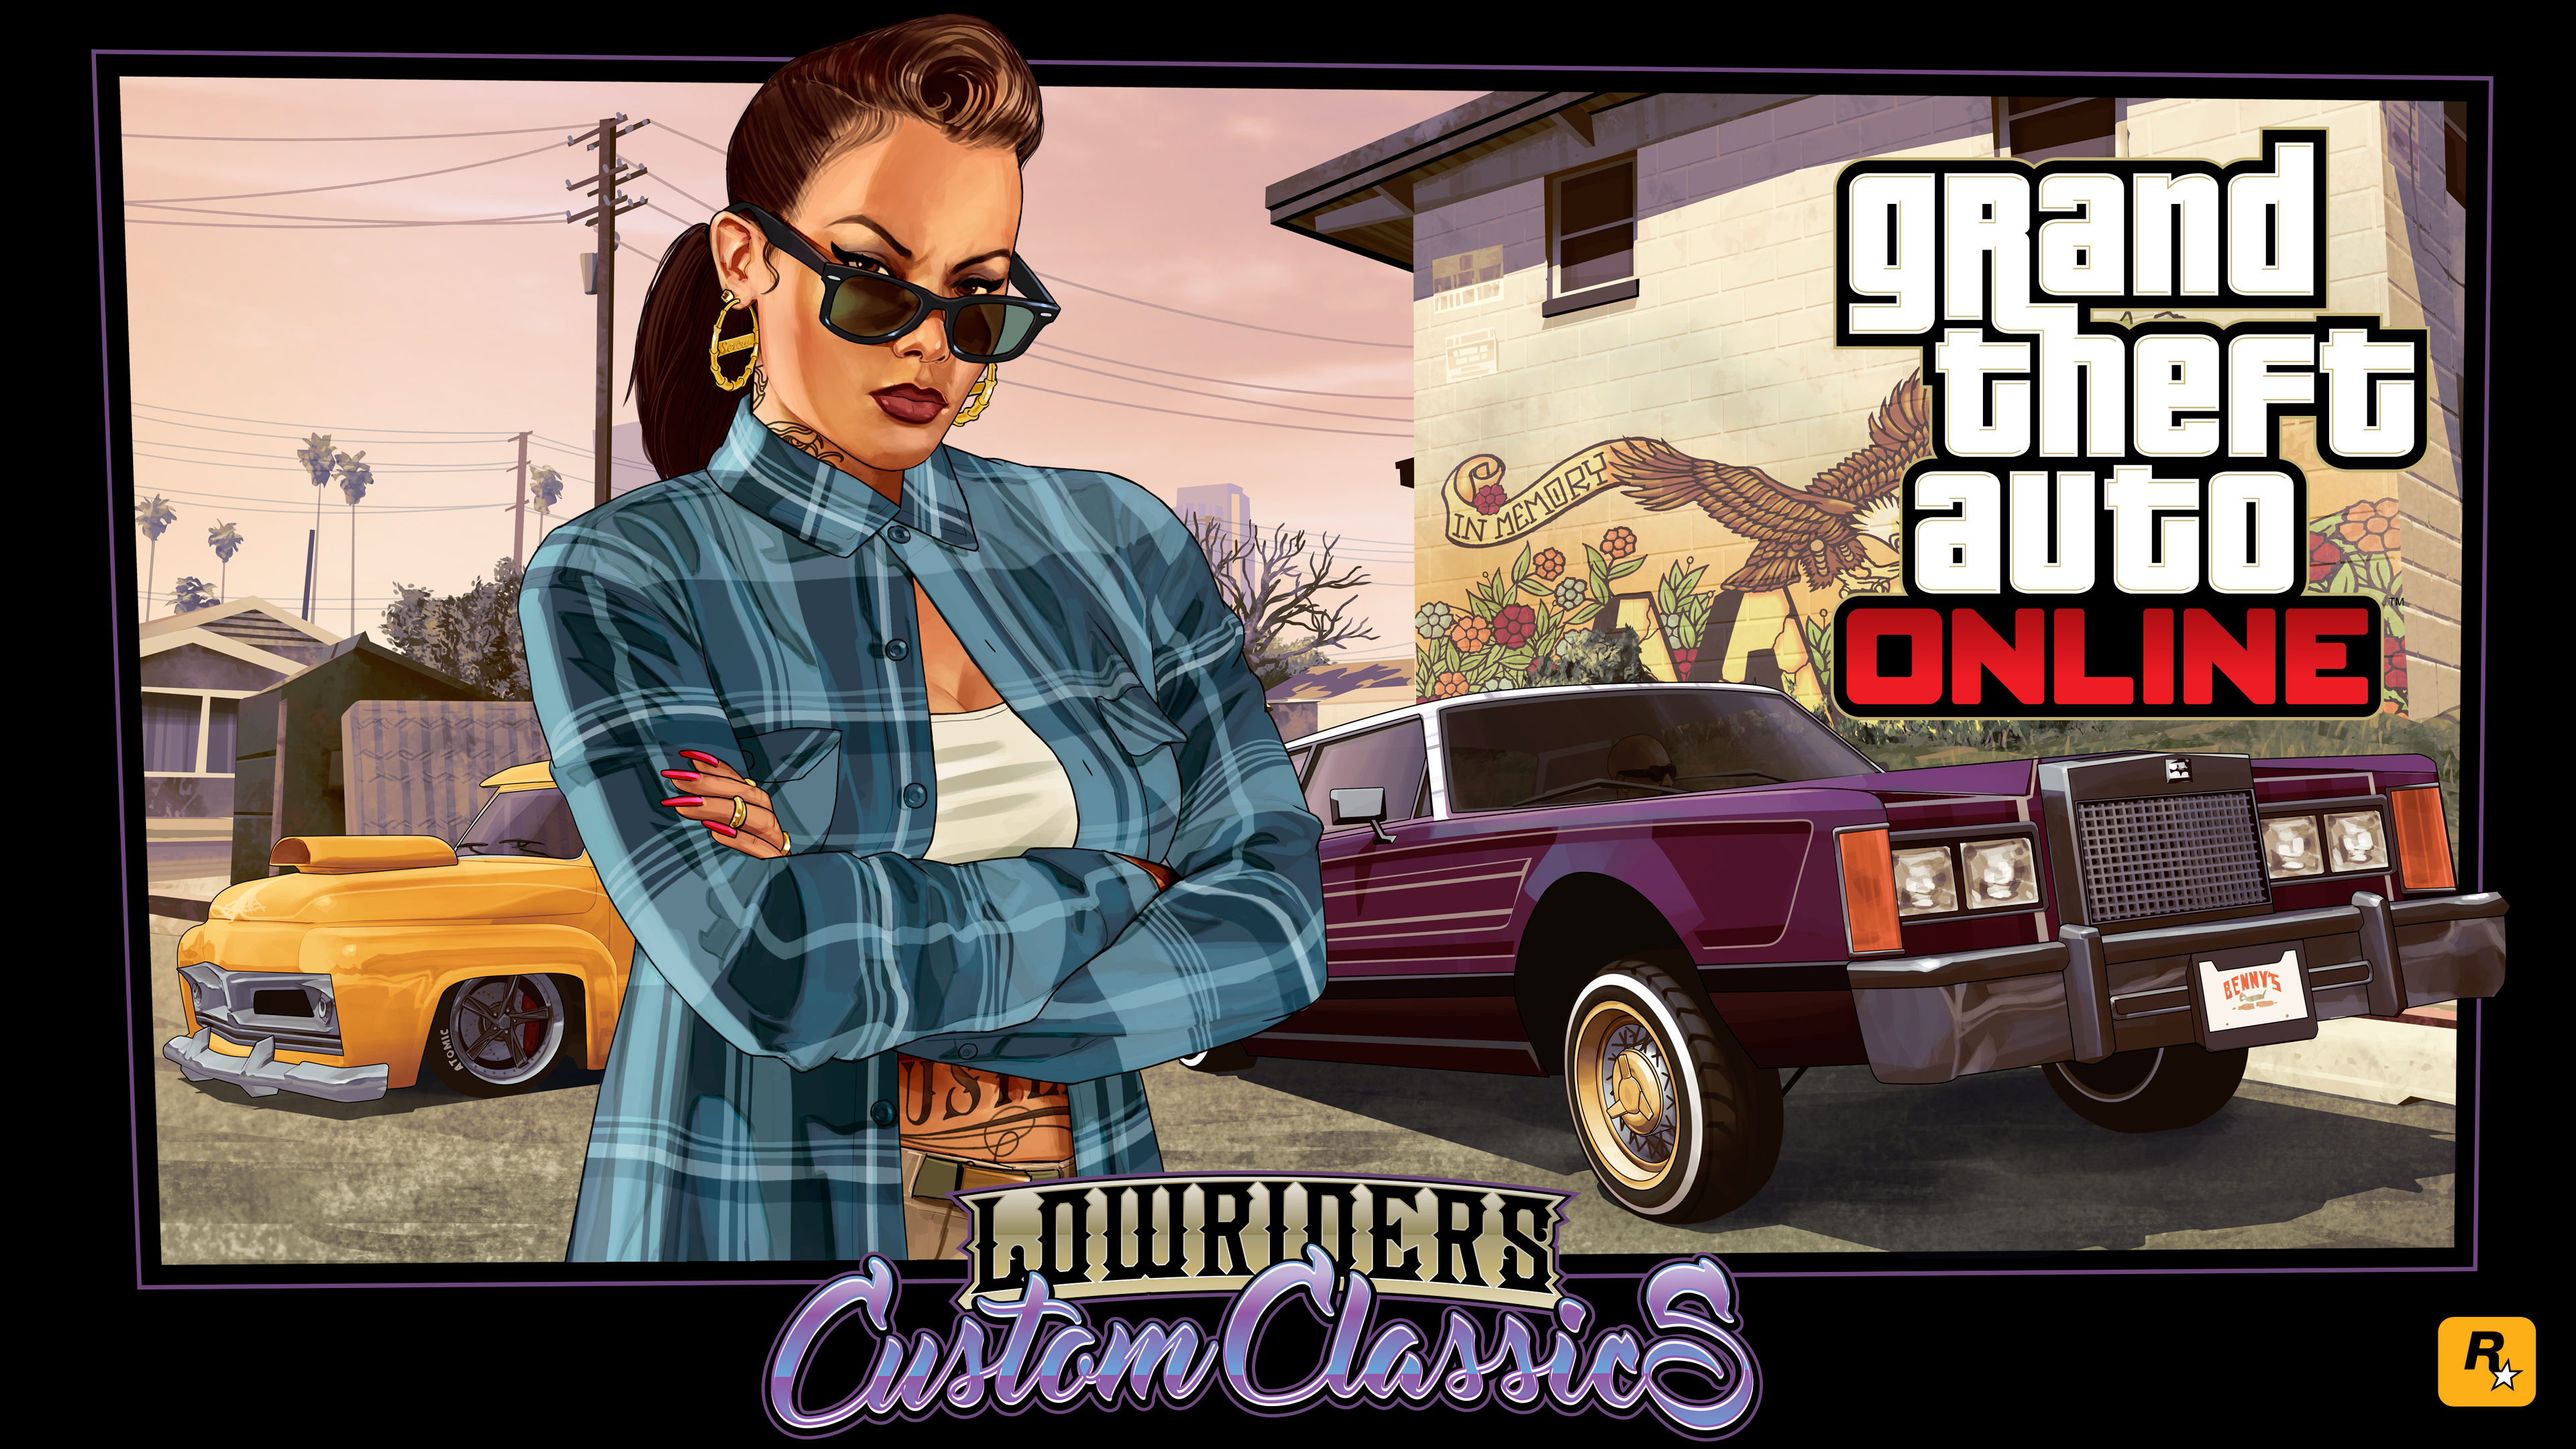 grand theft auto online 1536010149 - Grand Theft Auto Online - xbox games wallpapers, ps games wallpapers, pc games wallpapers, gta 5 wallpapers, games wallpapers